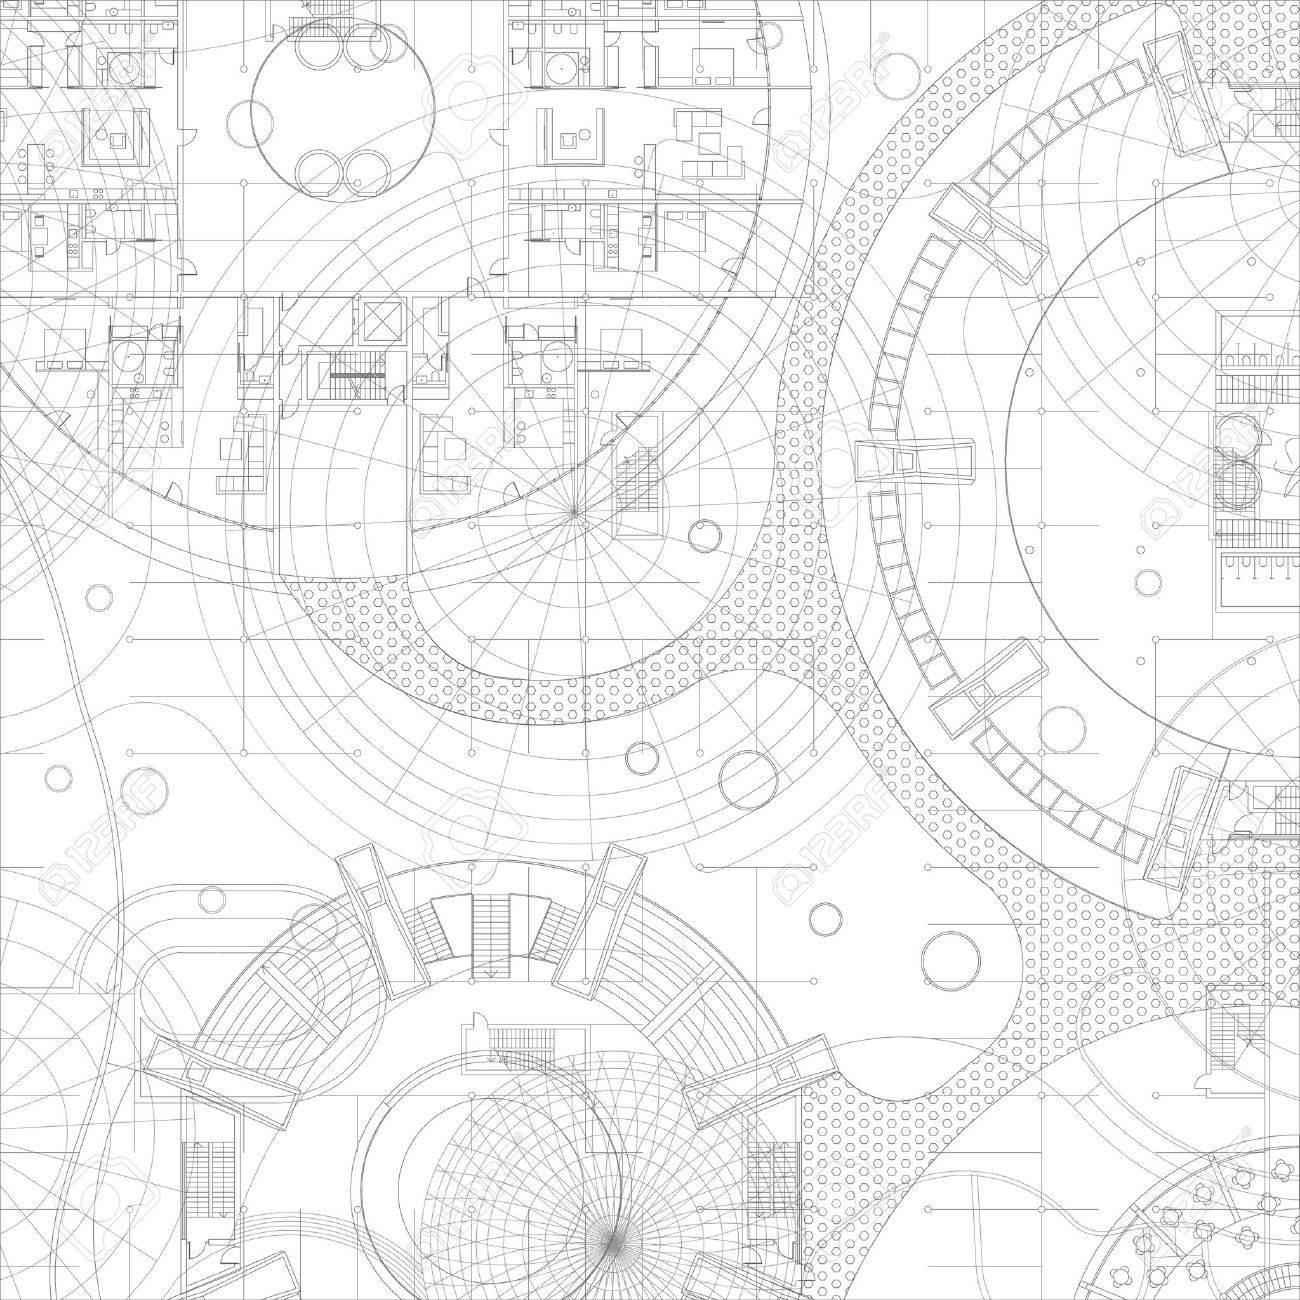 Royalty free illustration download hand drawing sketches architectural blueprint vector drawing background stock vector 39969951 malvernweather Gallery